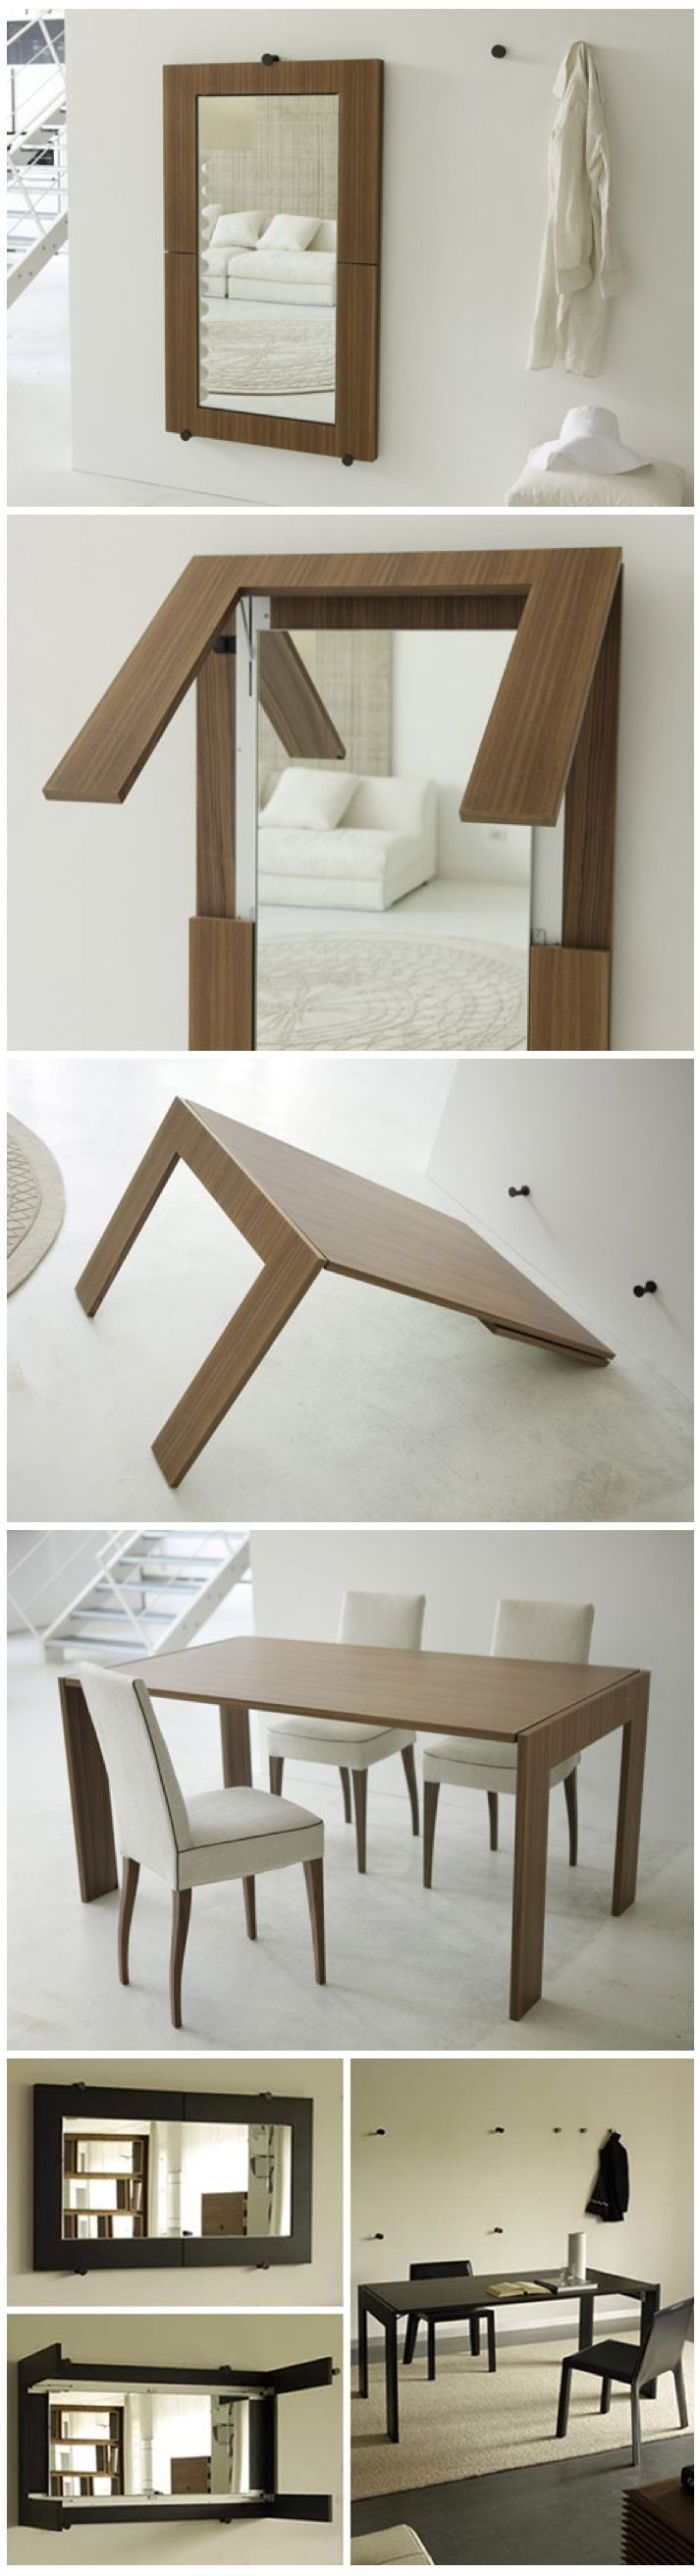 MIRROR TABLE.... 81c6e8316409afae4821e9e99816d926.jpg (713×2623)